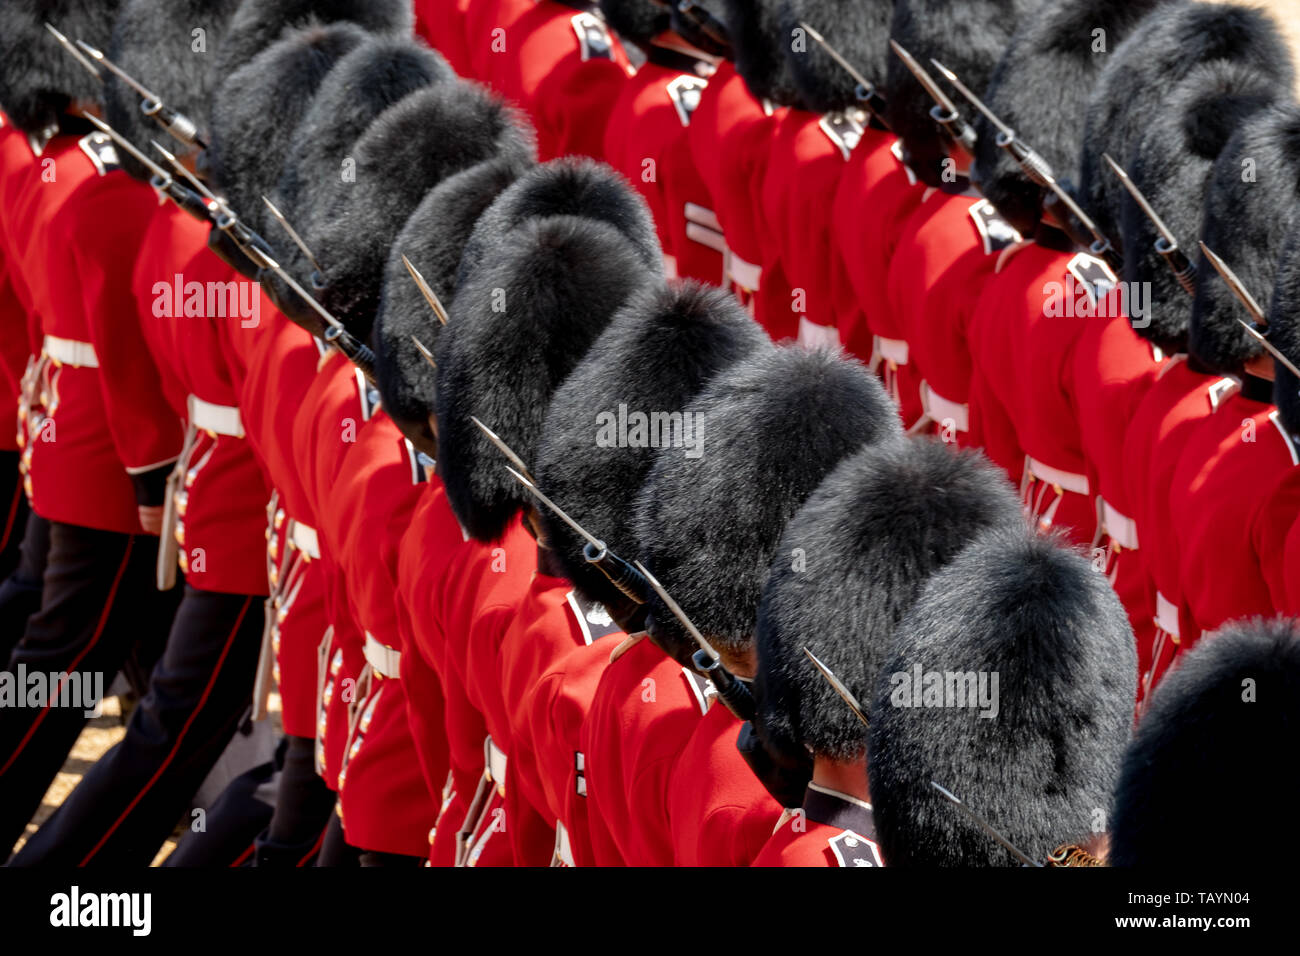 Trooping the Colour parade in Westminster, London UK, showing the Household Division Royal Guards doing military drills with great precision. - Stock Image